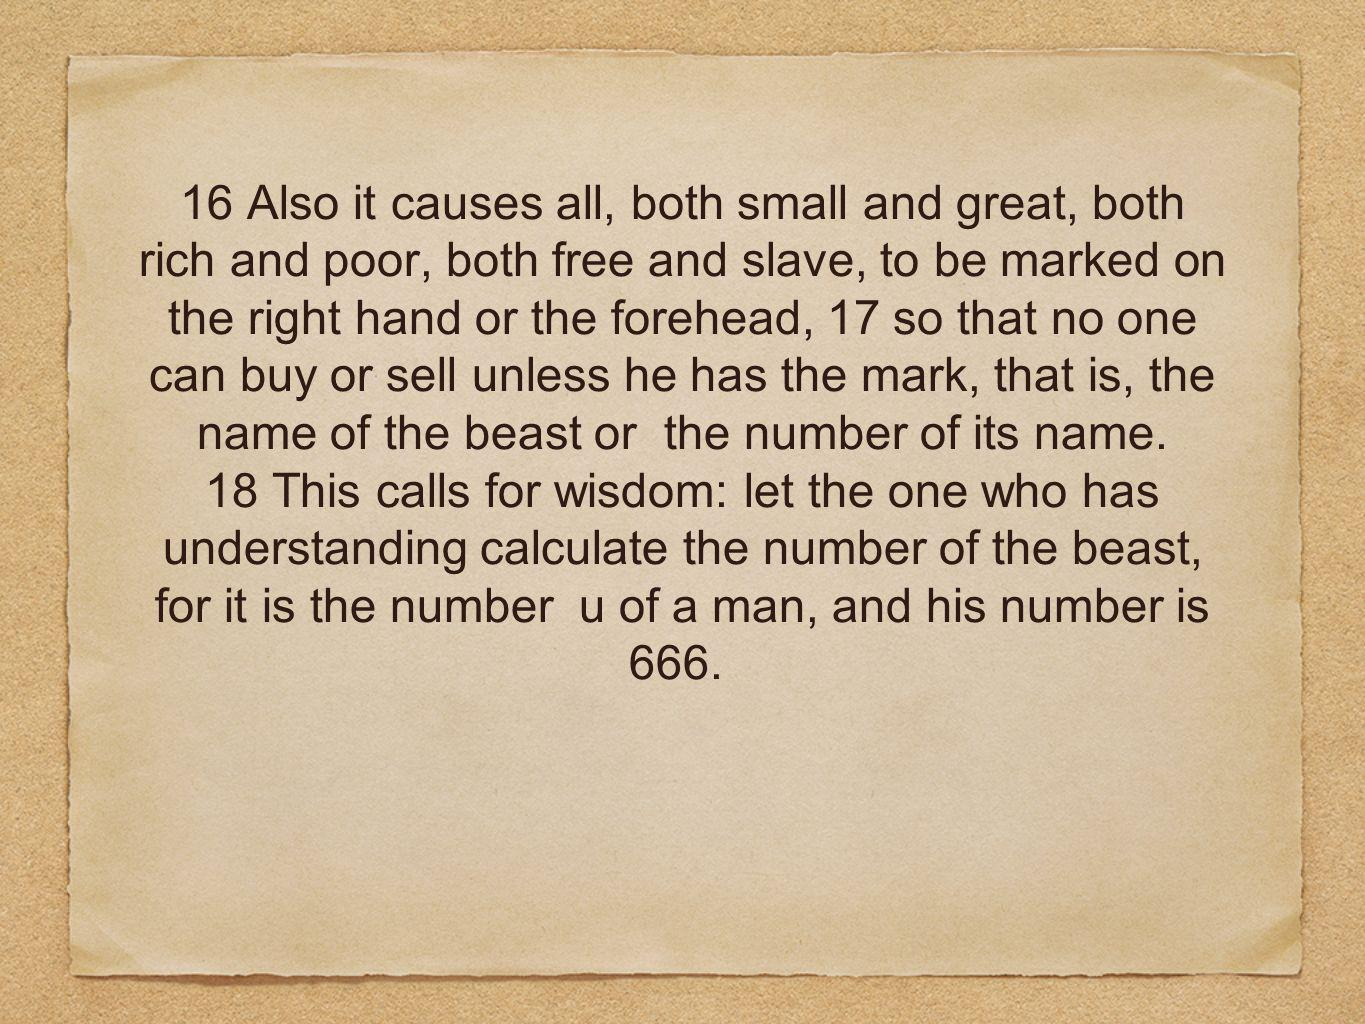 16 Also it causes all, both small and great, both rich and poor, both free and slave, to be marked on the right hand or the forehead, 17 so that no one can buy or sell unless he has the mark, that is, the name of the beast or the number of its name.